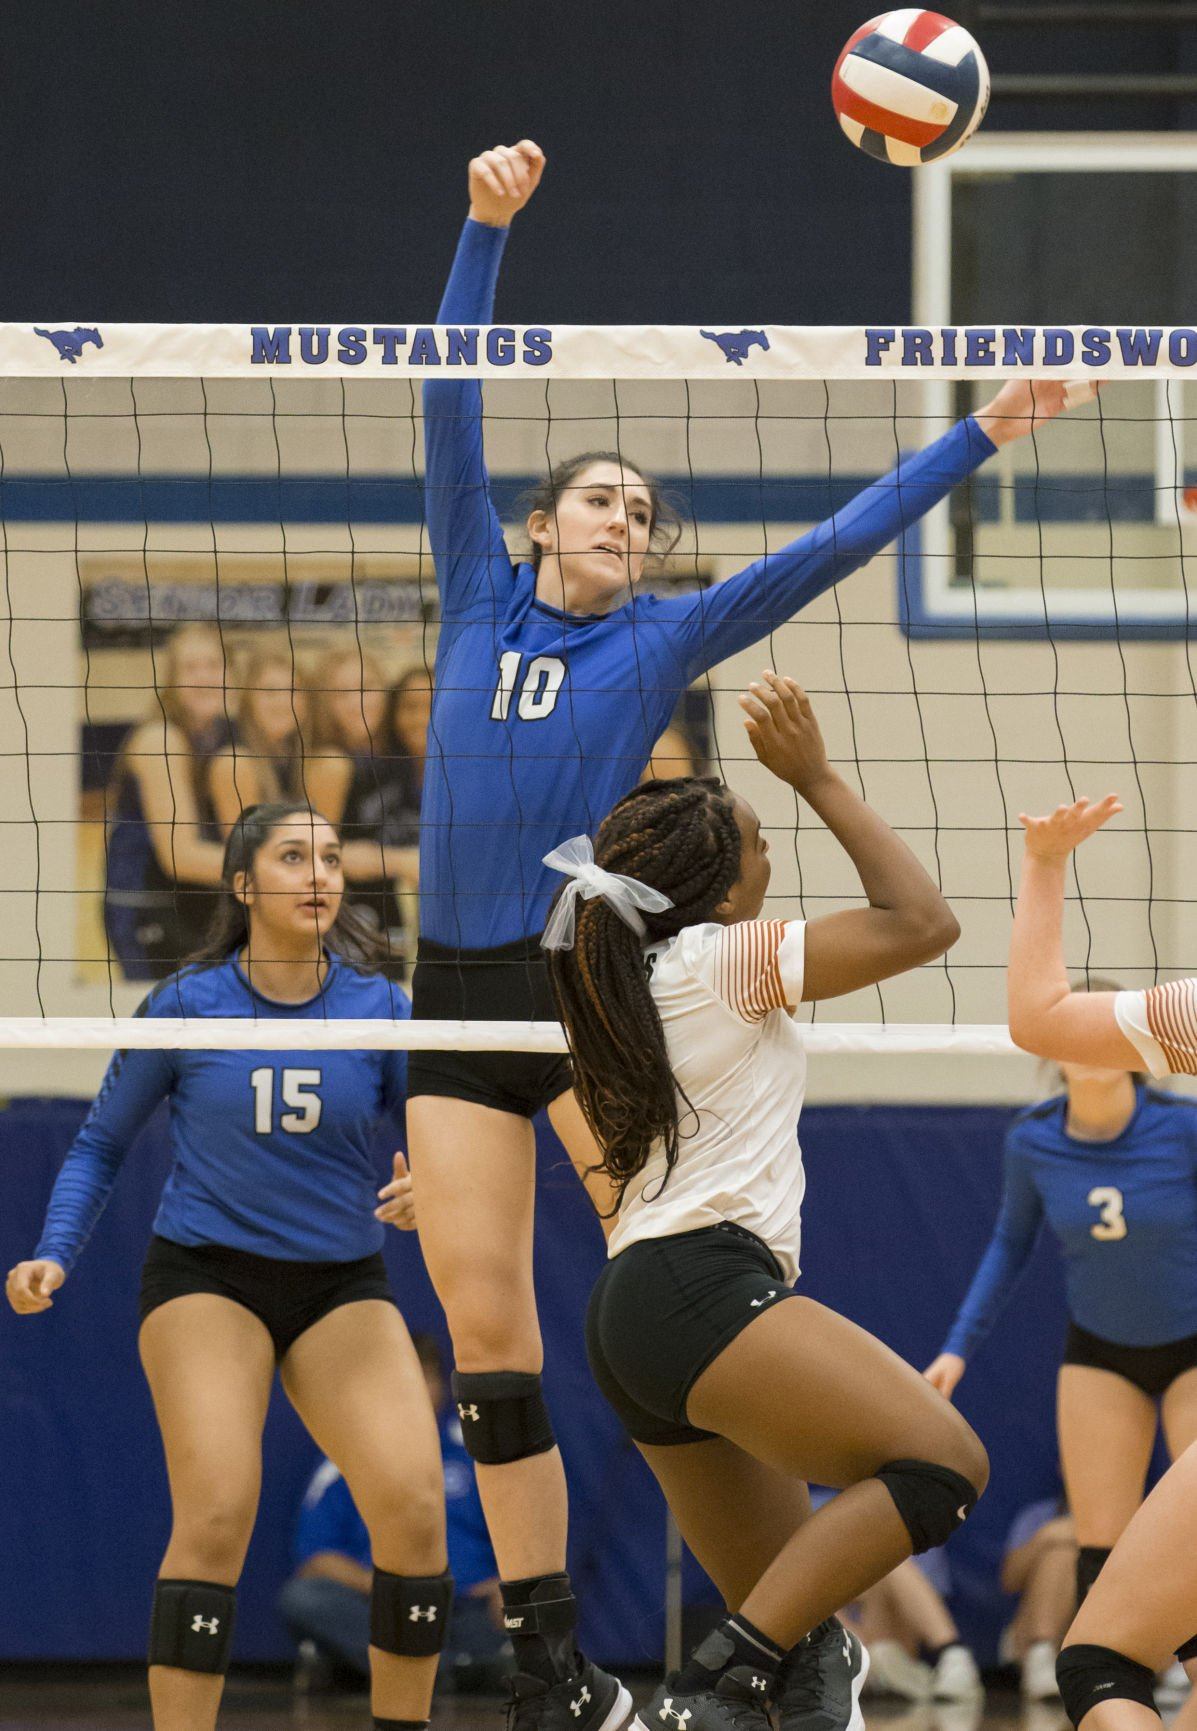 Friendswood vs Alvin Volleyball